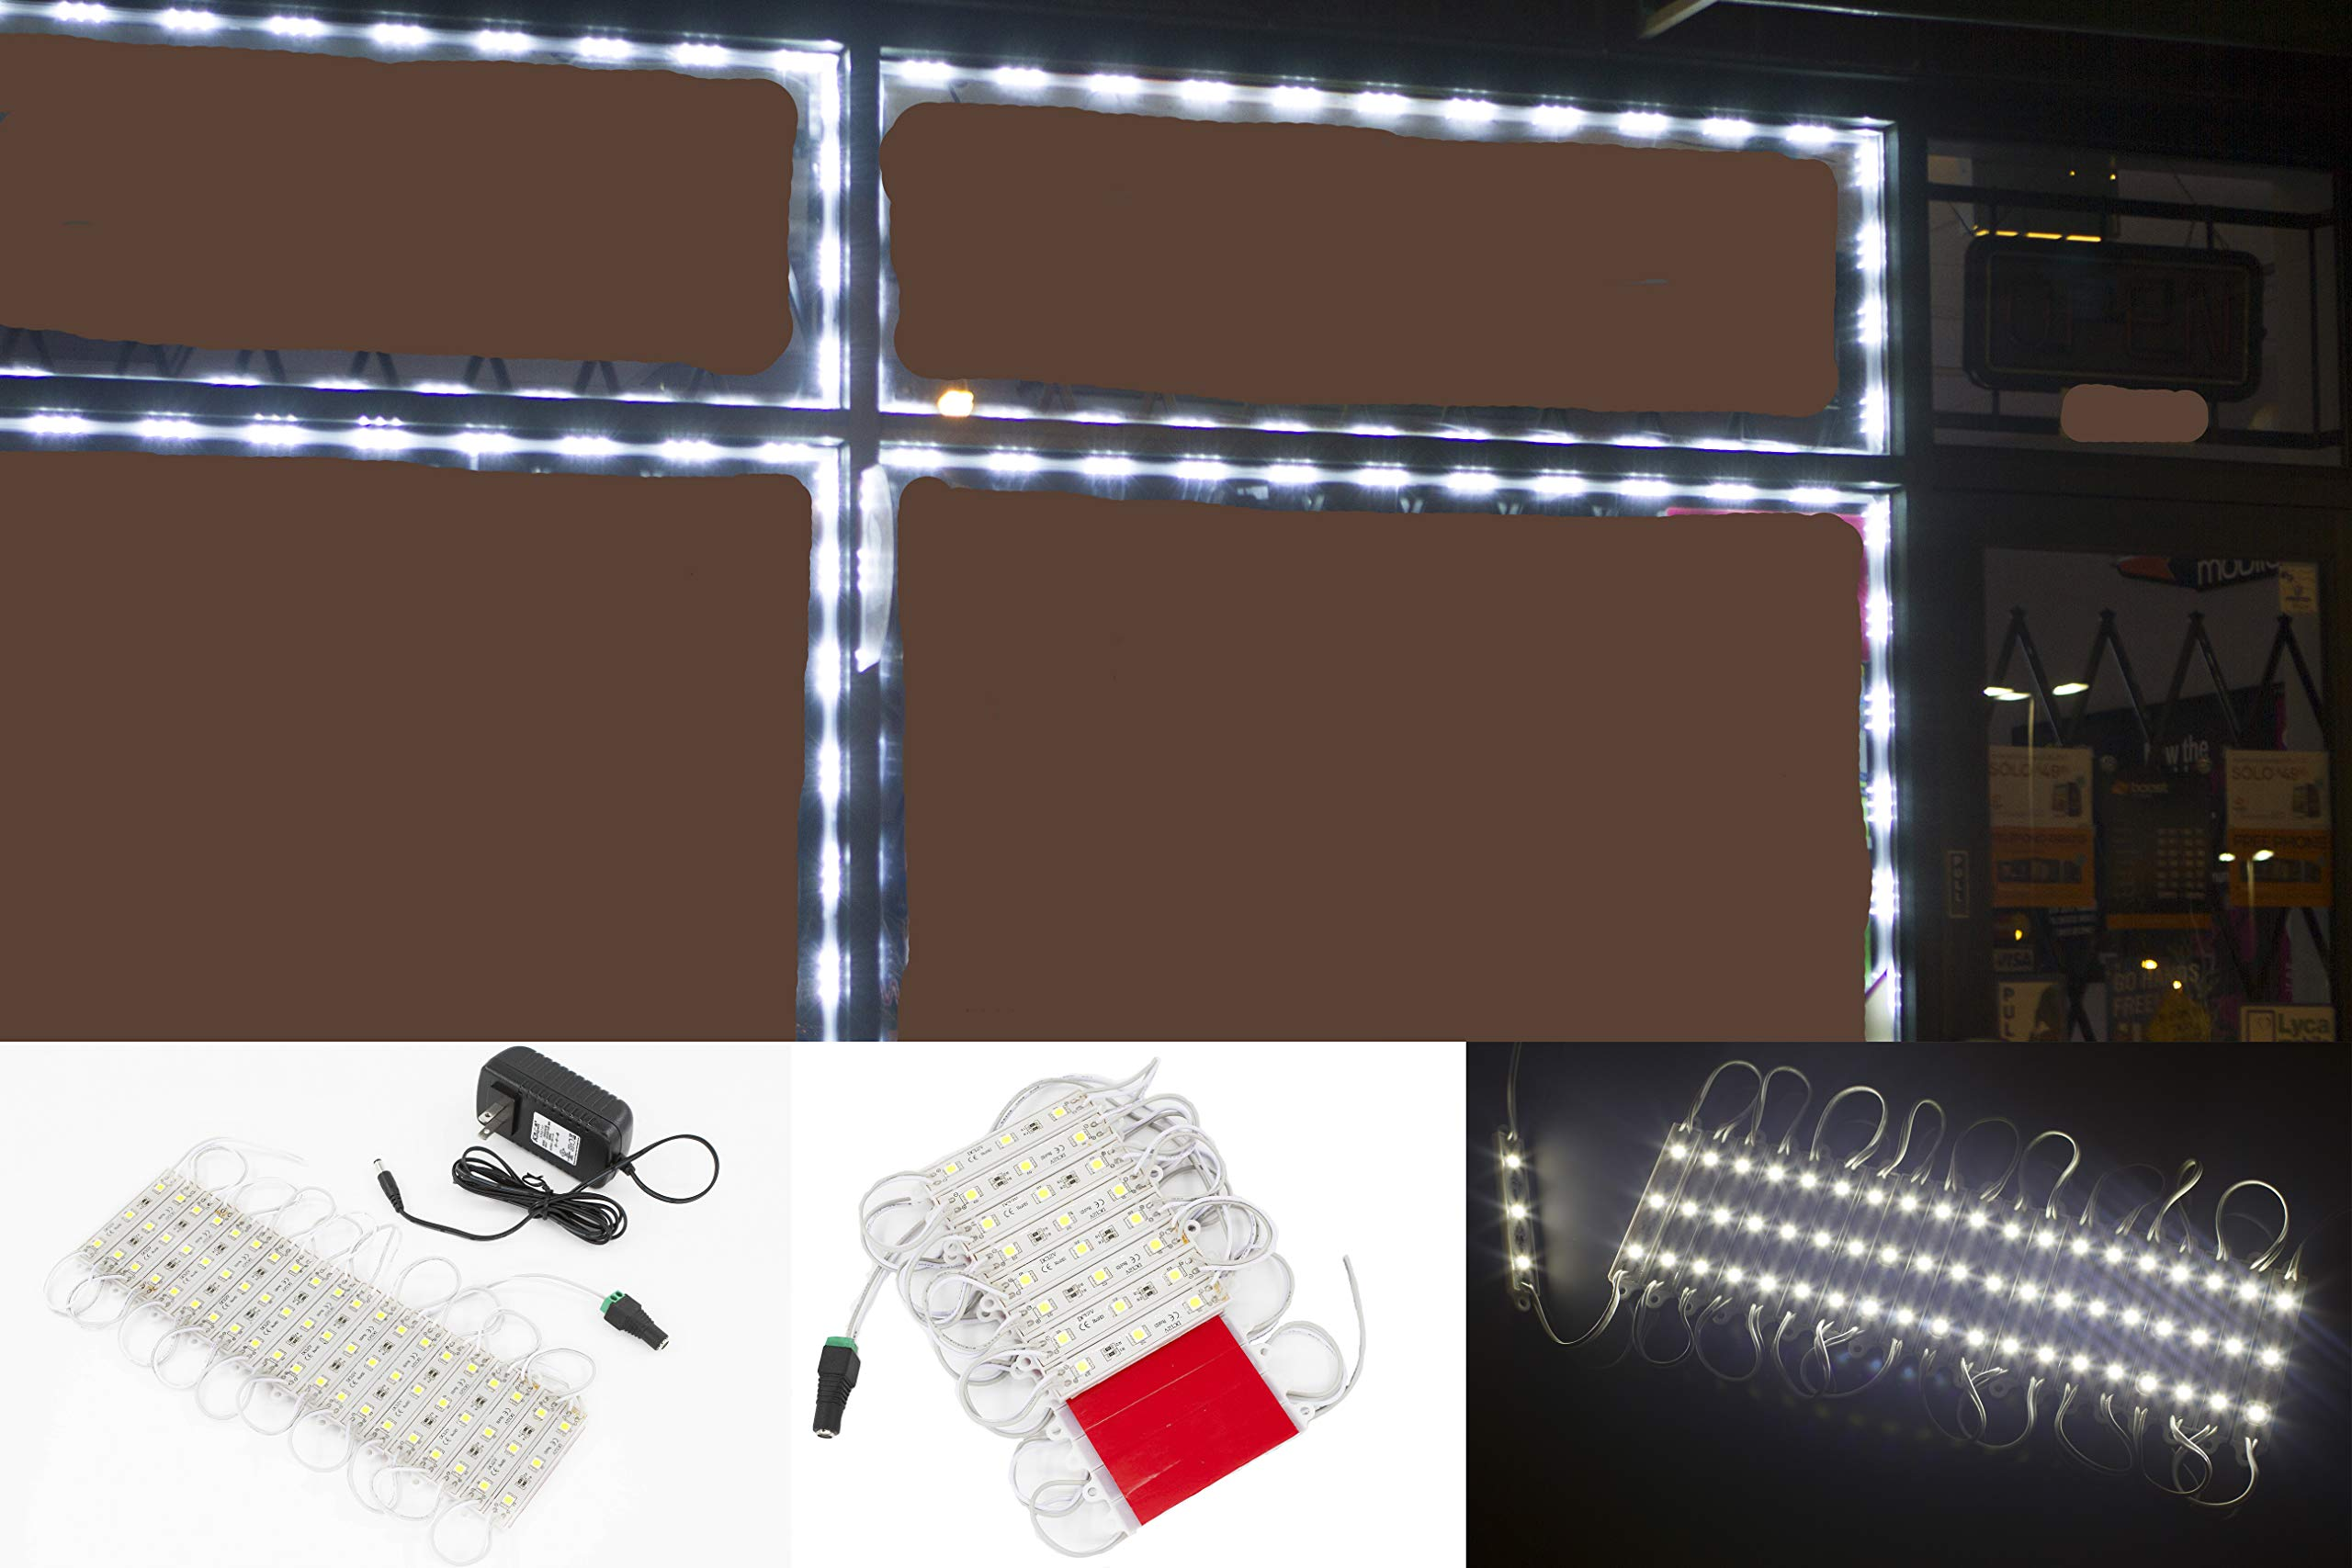 20ft Storefront 40 pieces White 5050 LED Light module Package with UL 12v 2 Amps AC Power